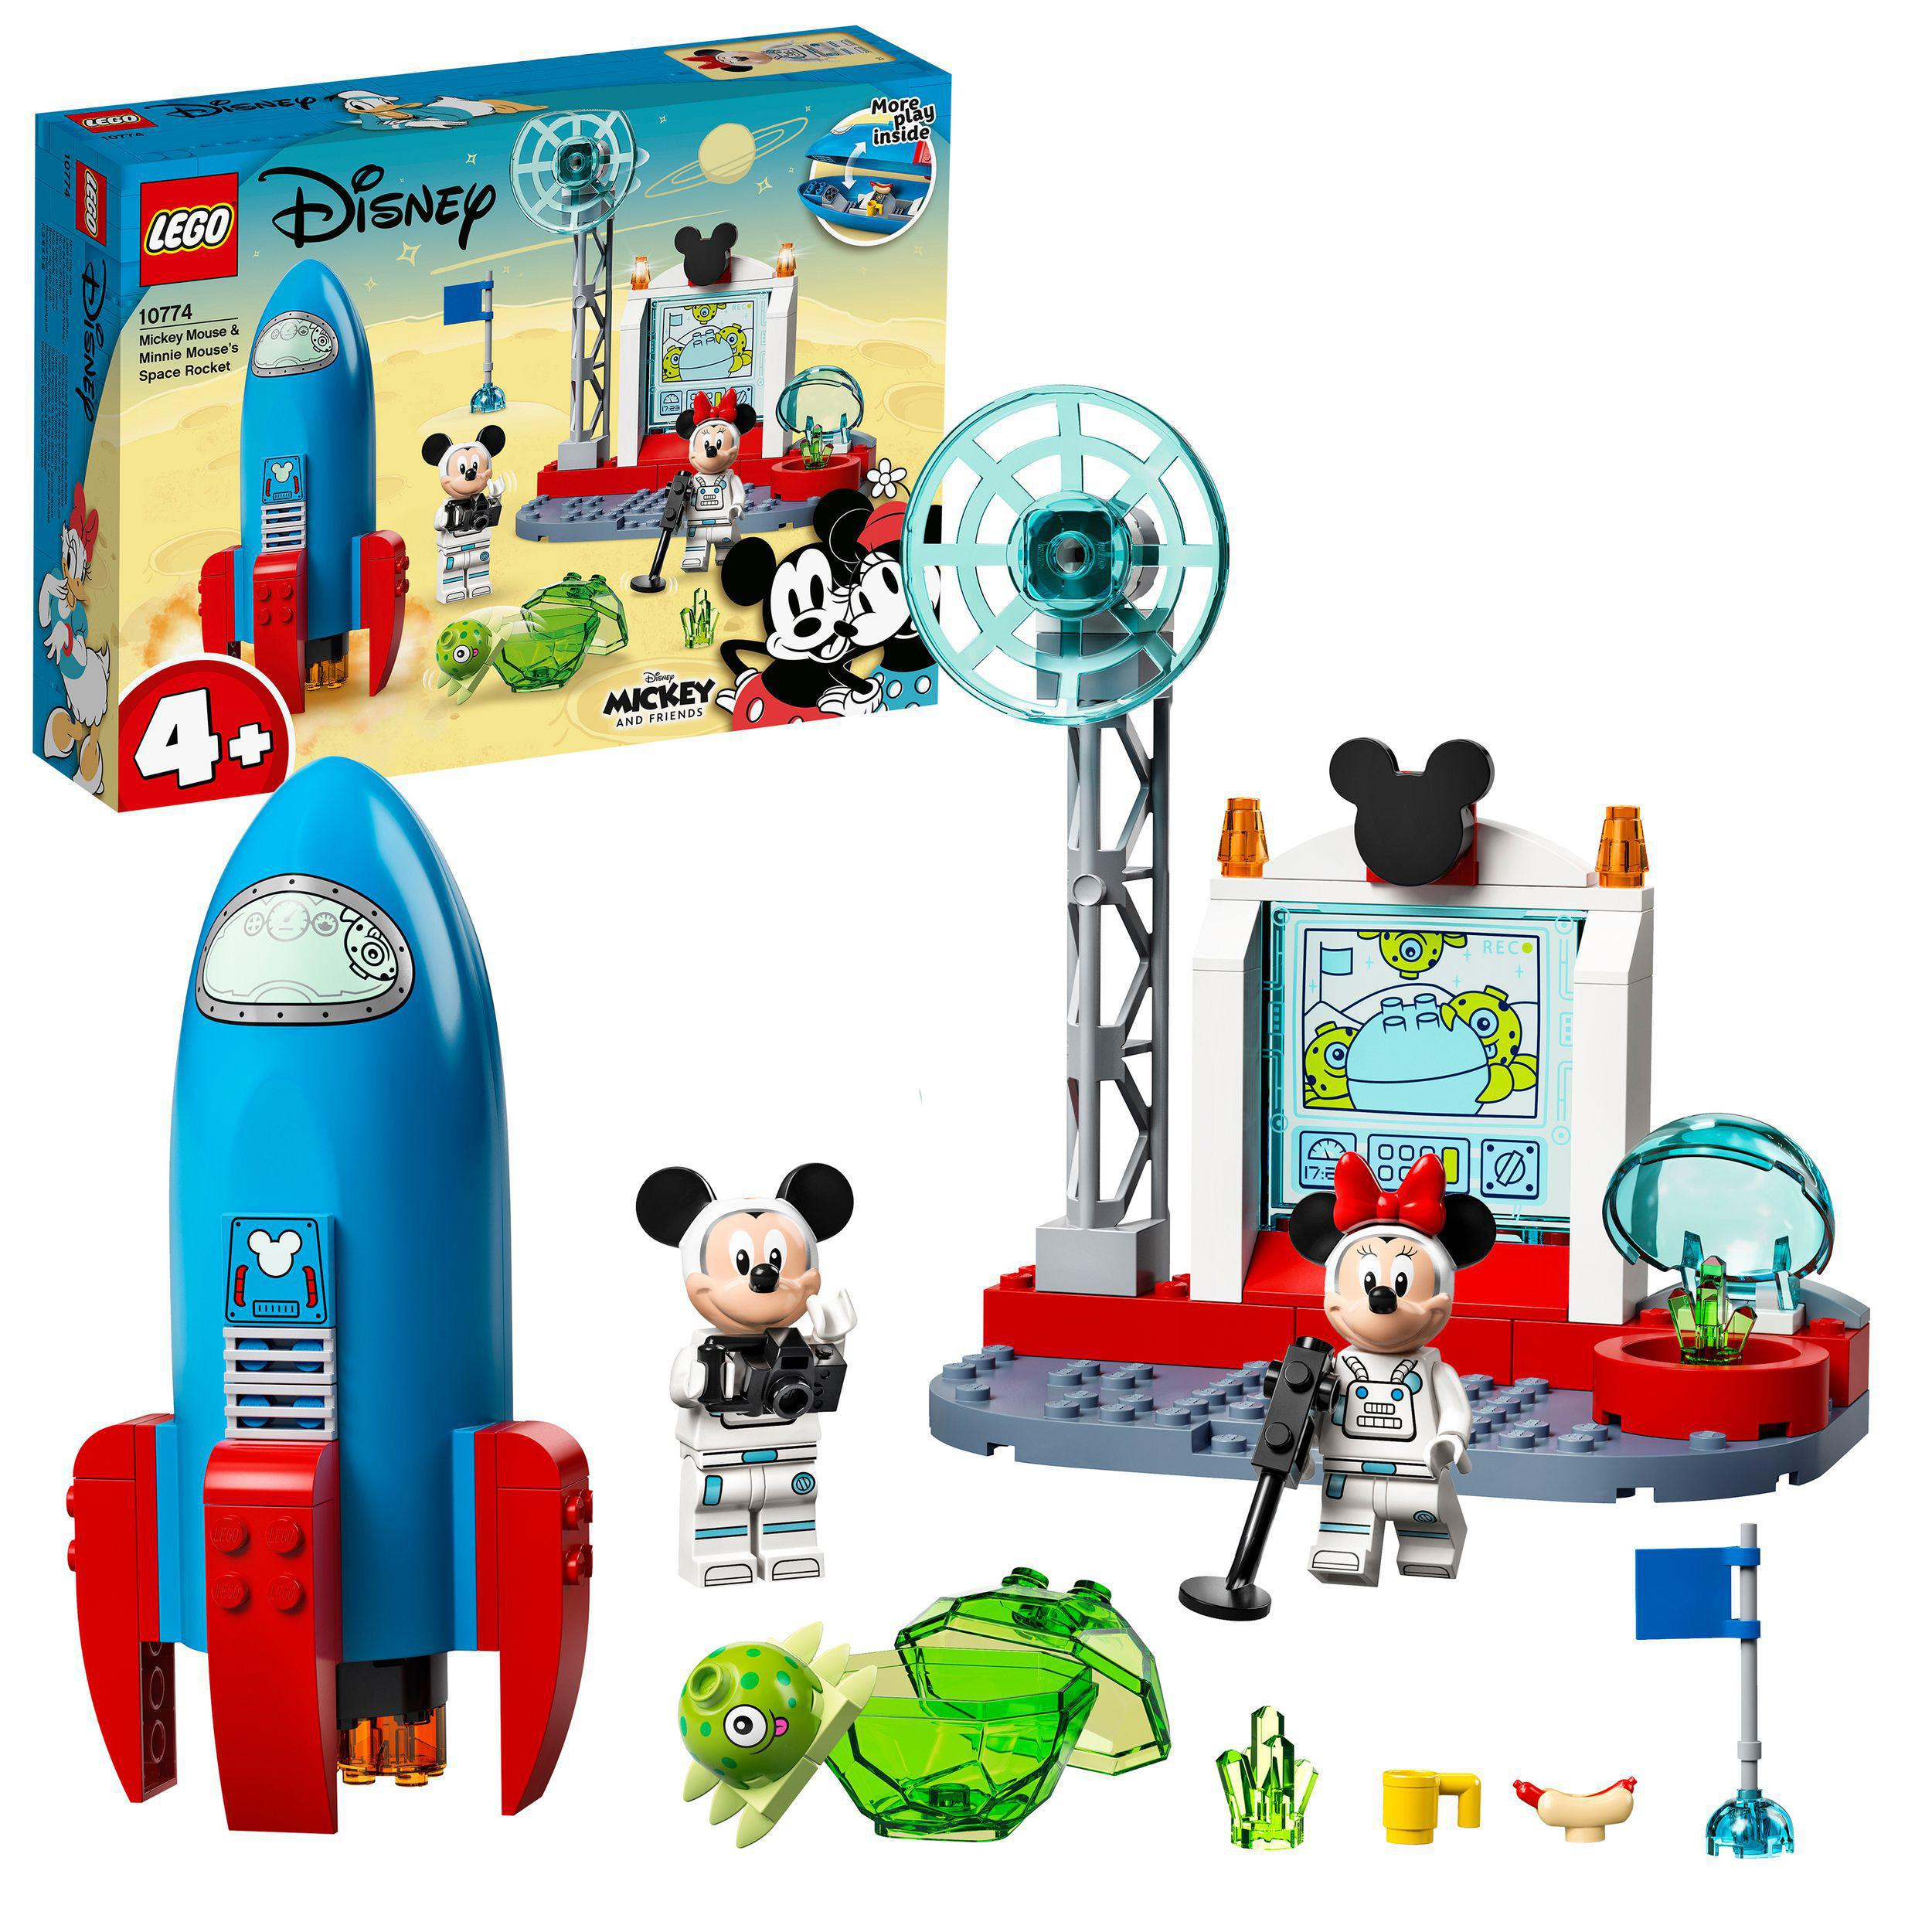 LEGO Mickey Mouse - Mickey Mouse & Minnie Mouse's Space Rocket (10774)